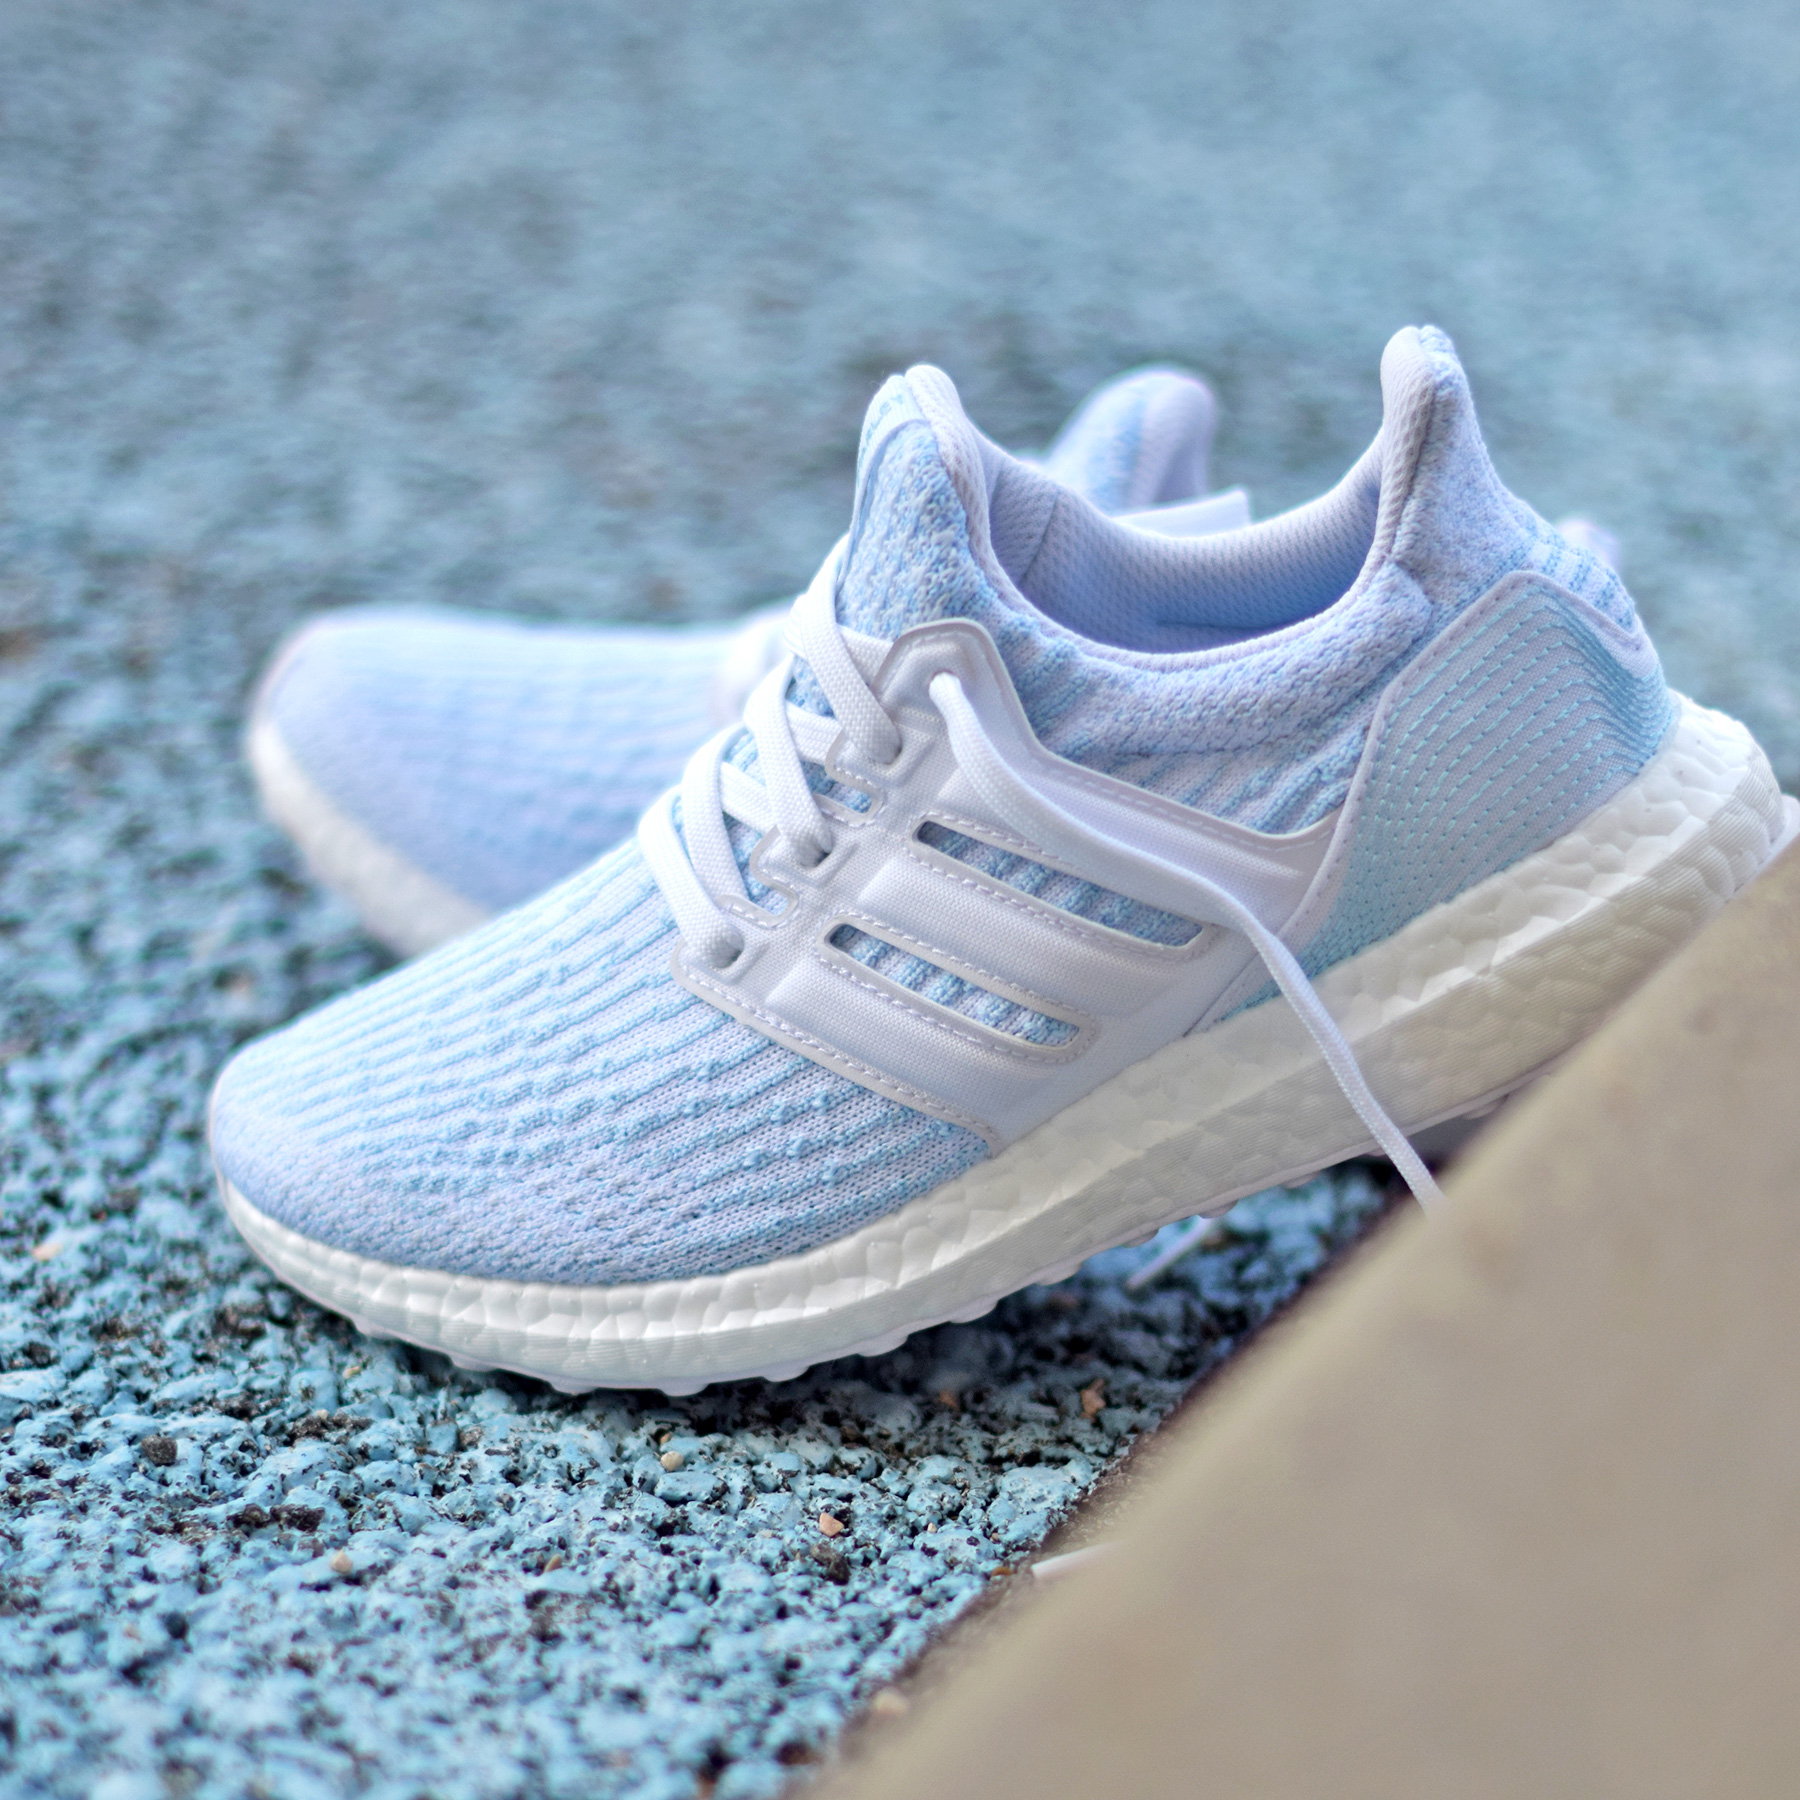 99ae6fb6d5f14 adidas Ultra Boost Parley White Ice Blue - Sneakers.fr